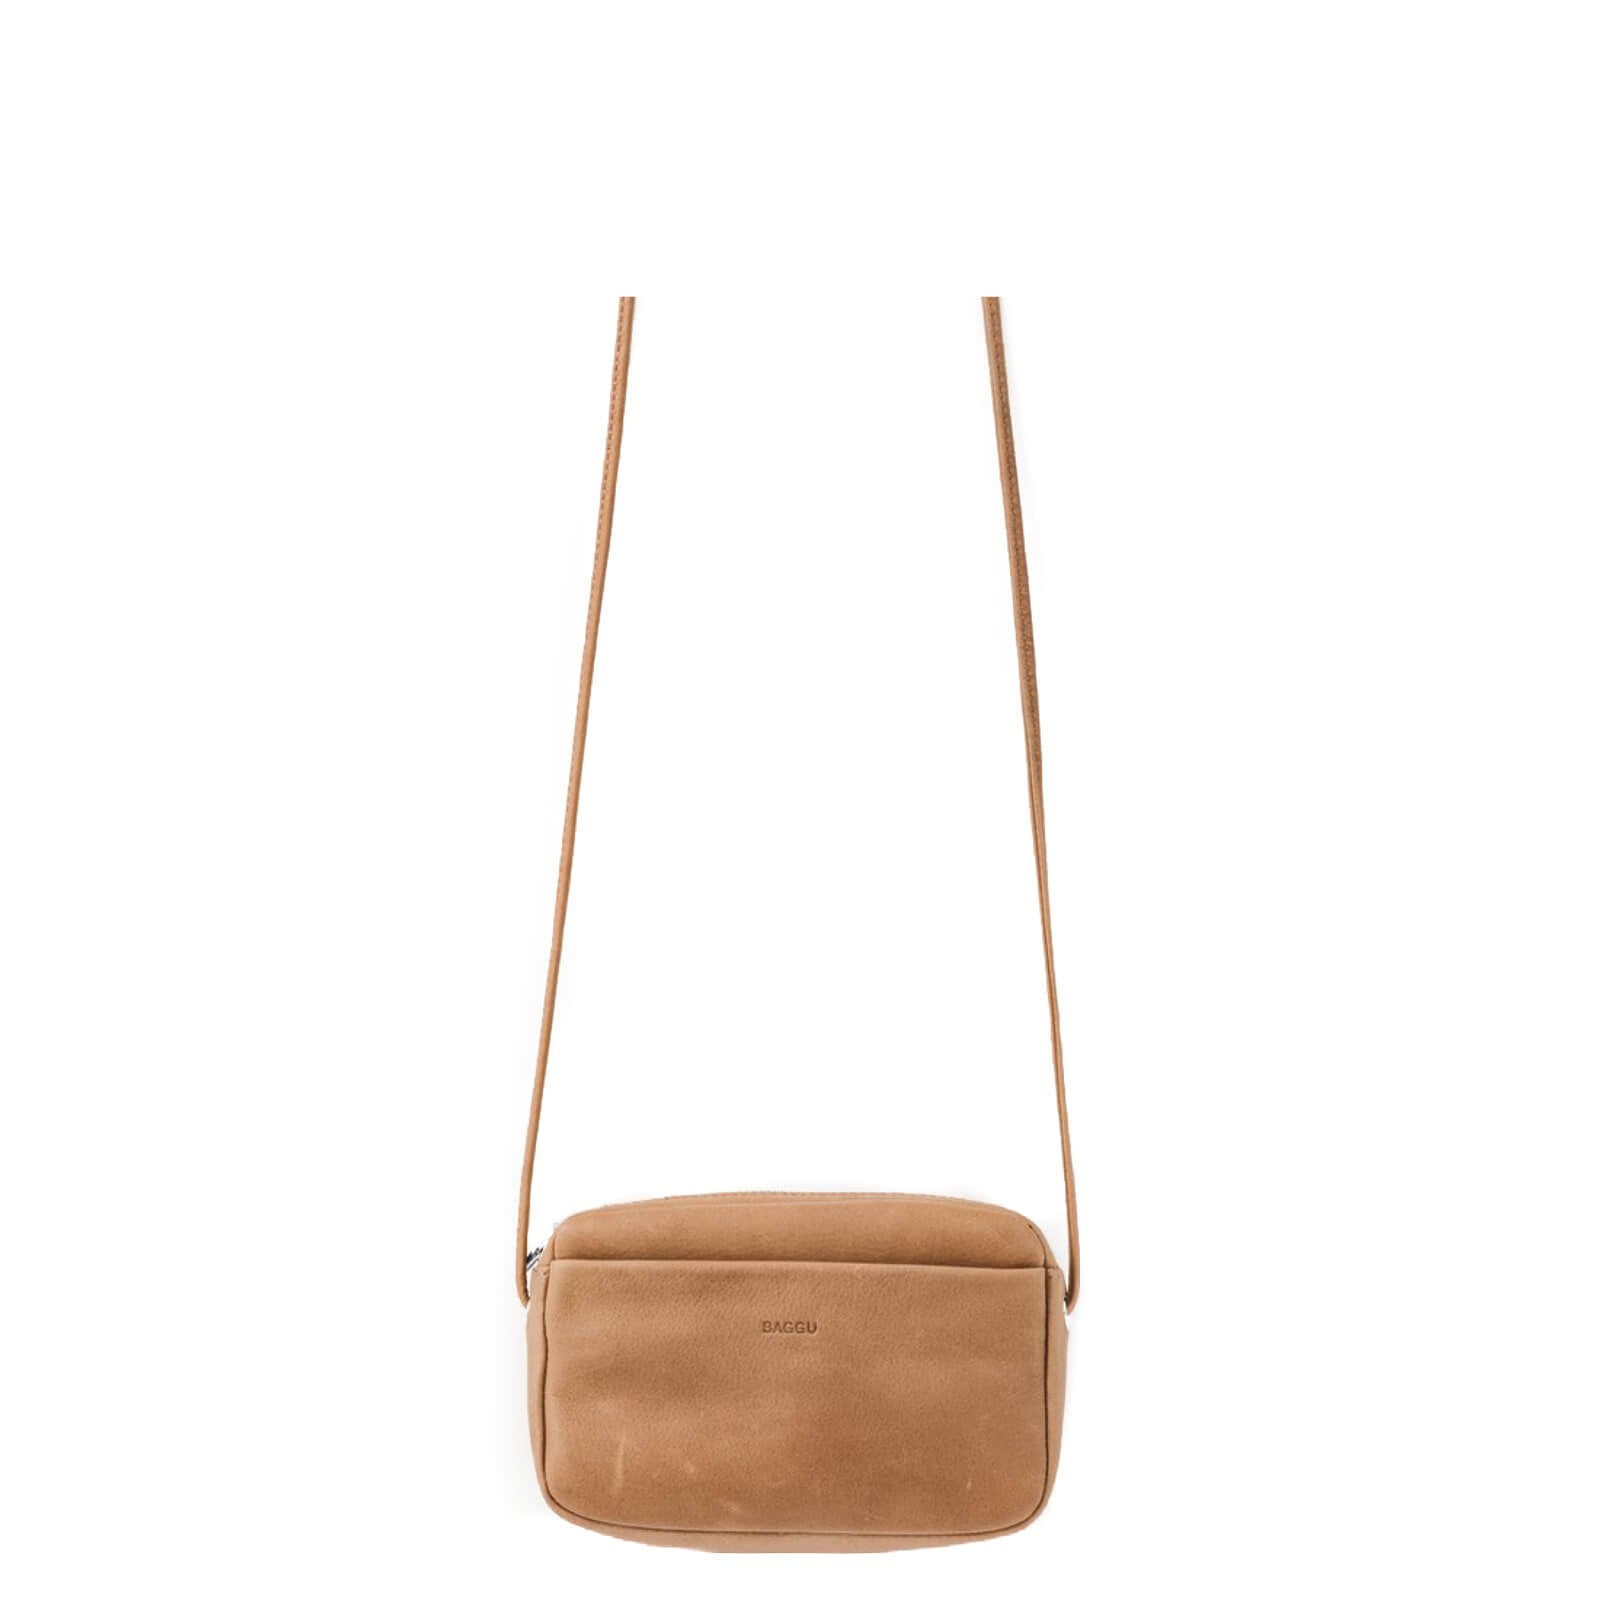 MINI PURSE LEATHER BAGGU MINIMAL